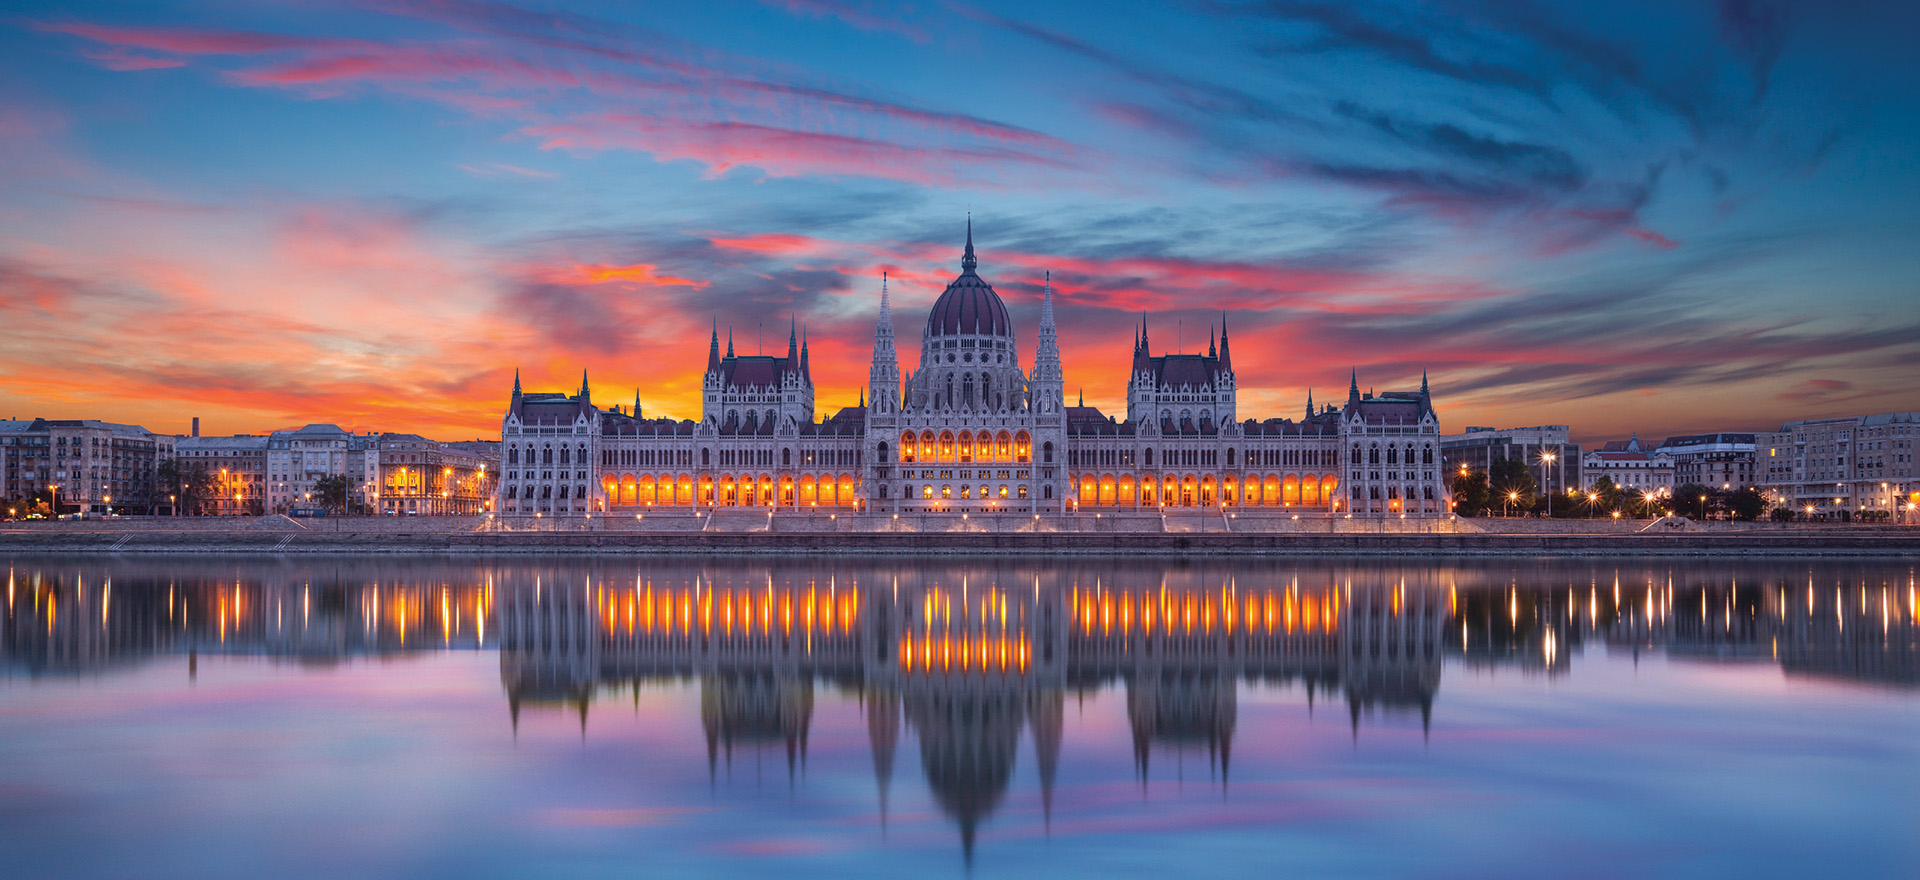 Hungarian Parliament Building at night straight view